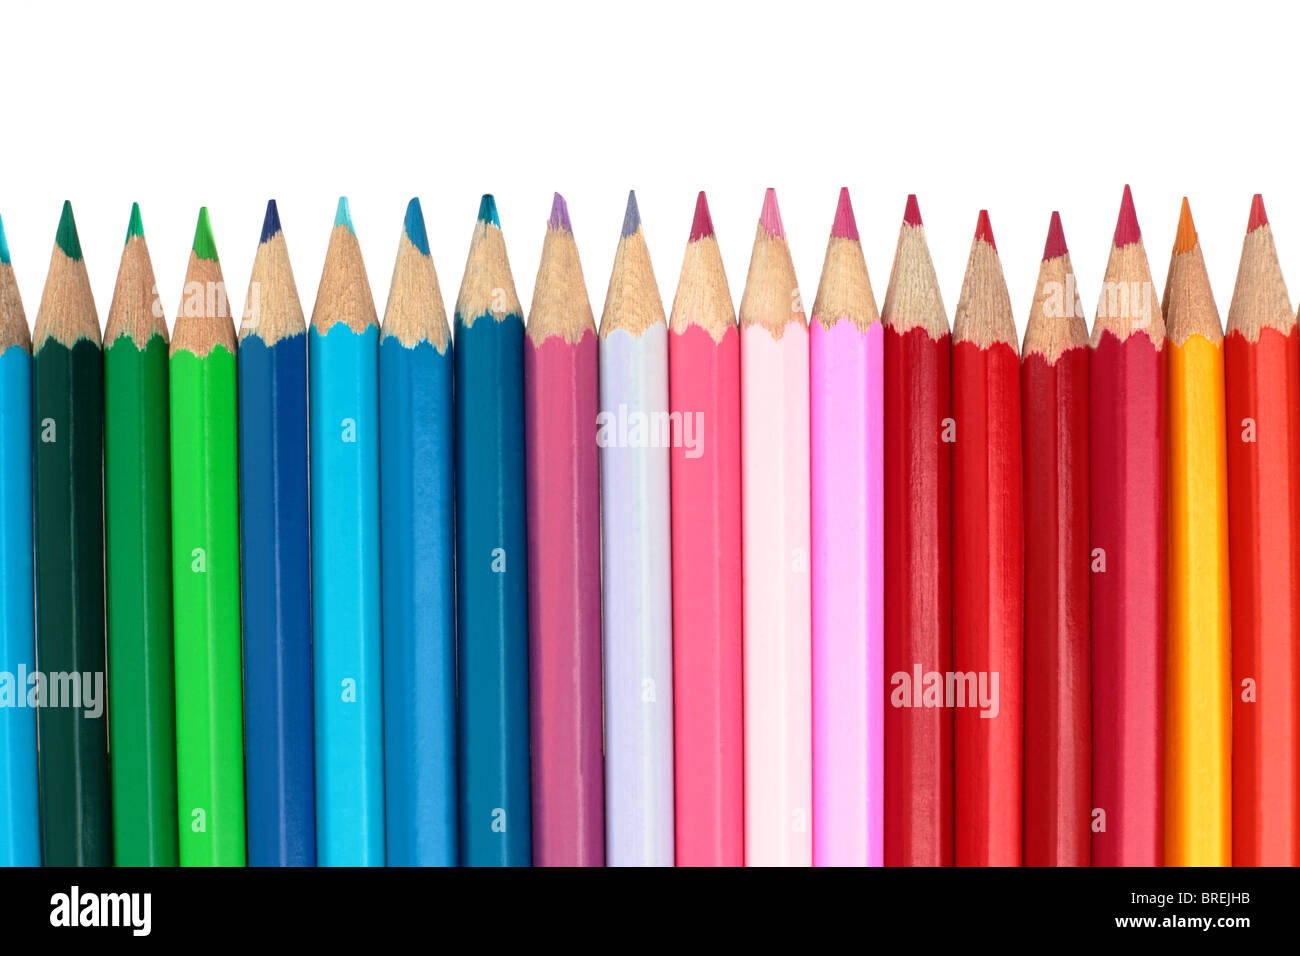 Multi-coloured pencils on a white background - Stock Image